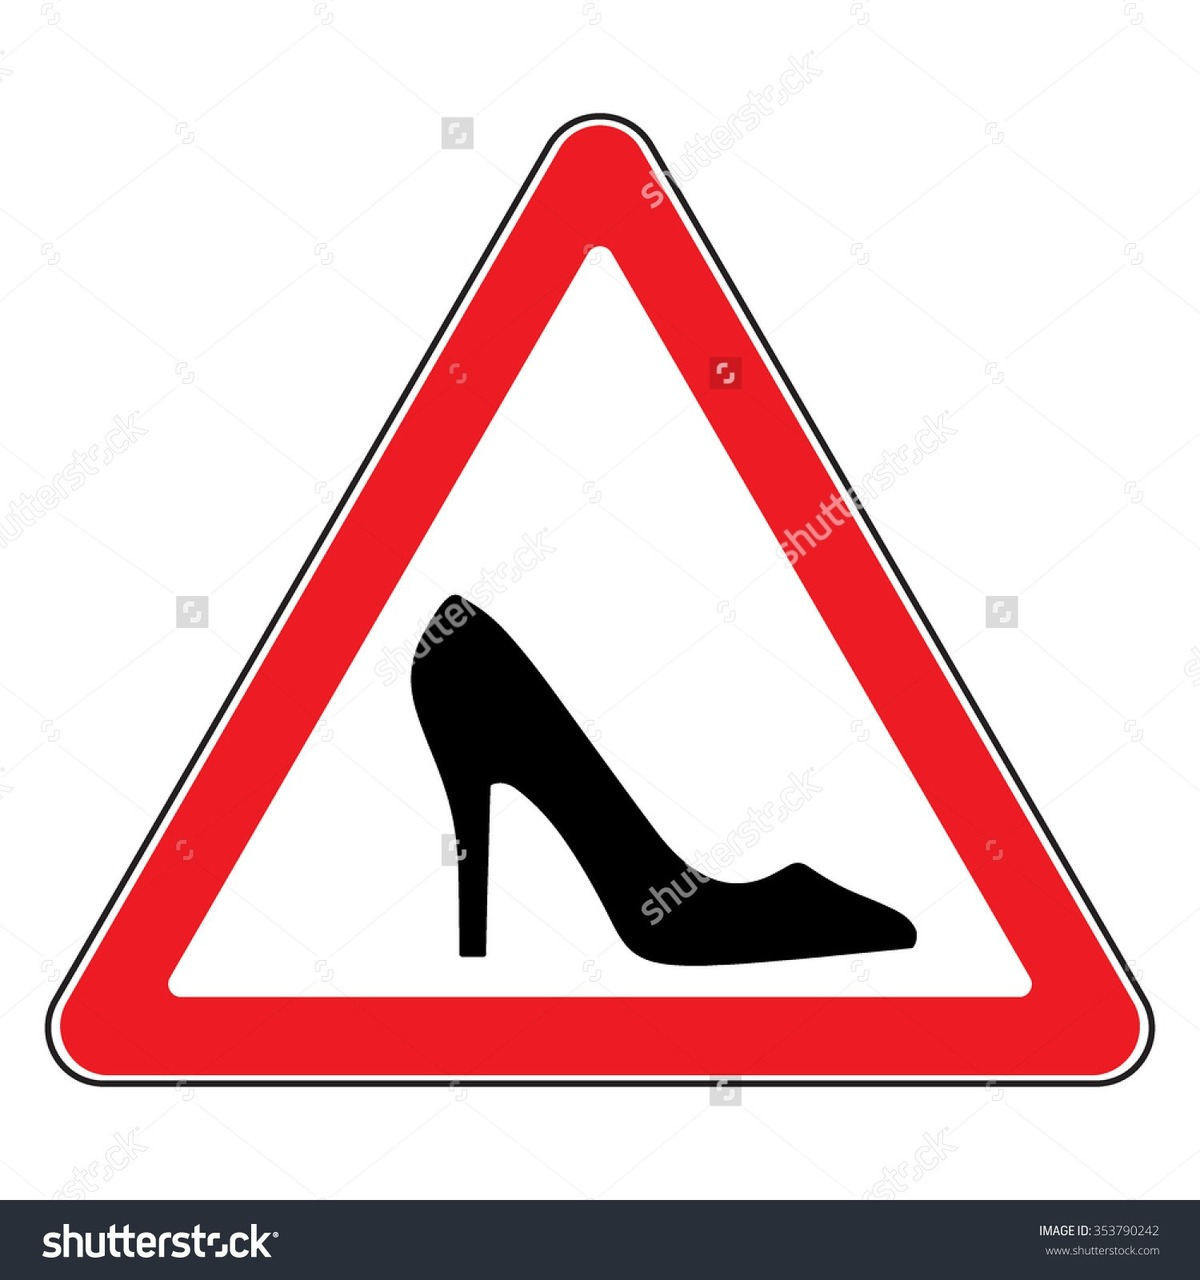 stock-vector-high-heel-shoes-road-sign-elegant-black-silhouette-information-icon-female-driver-symbol-353790242